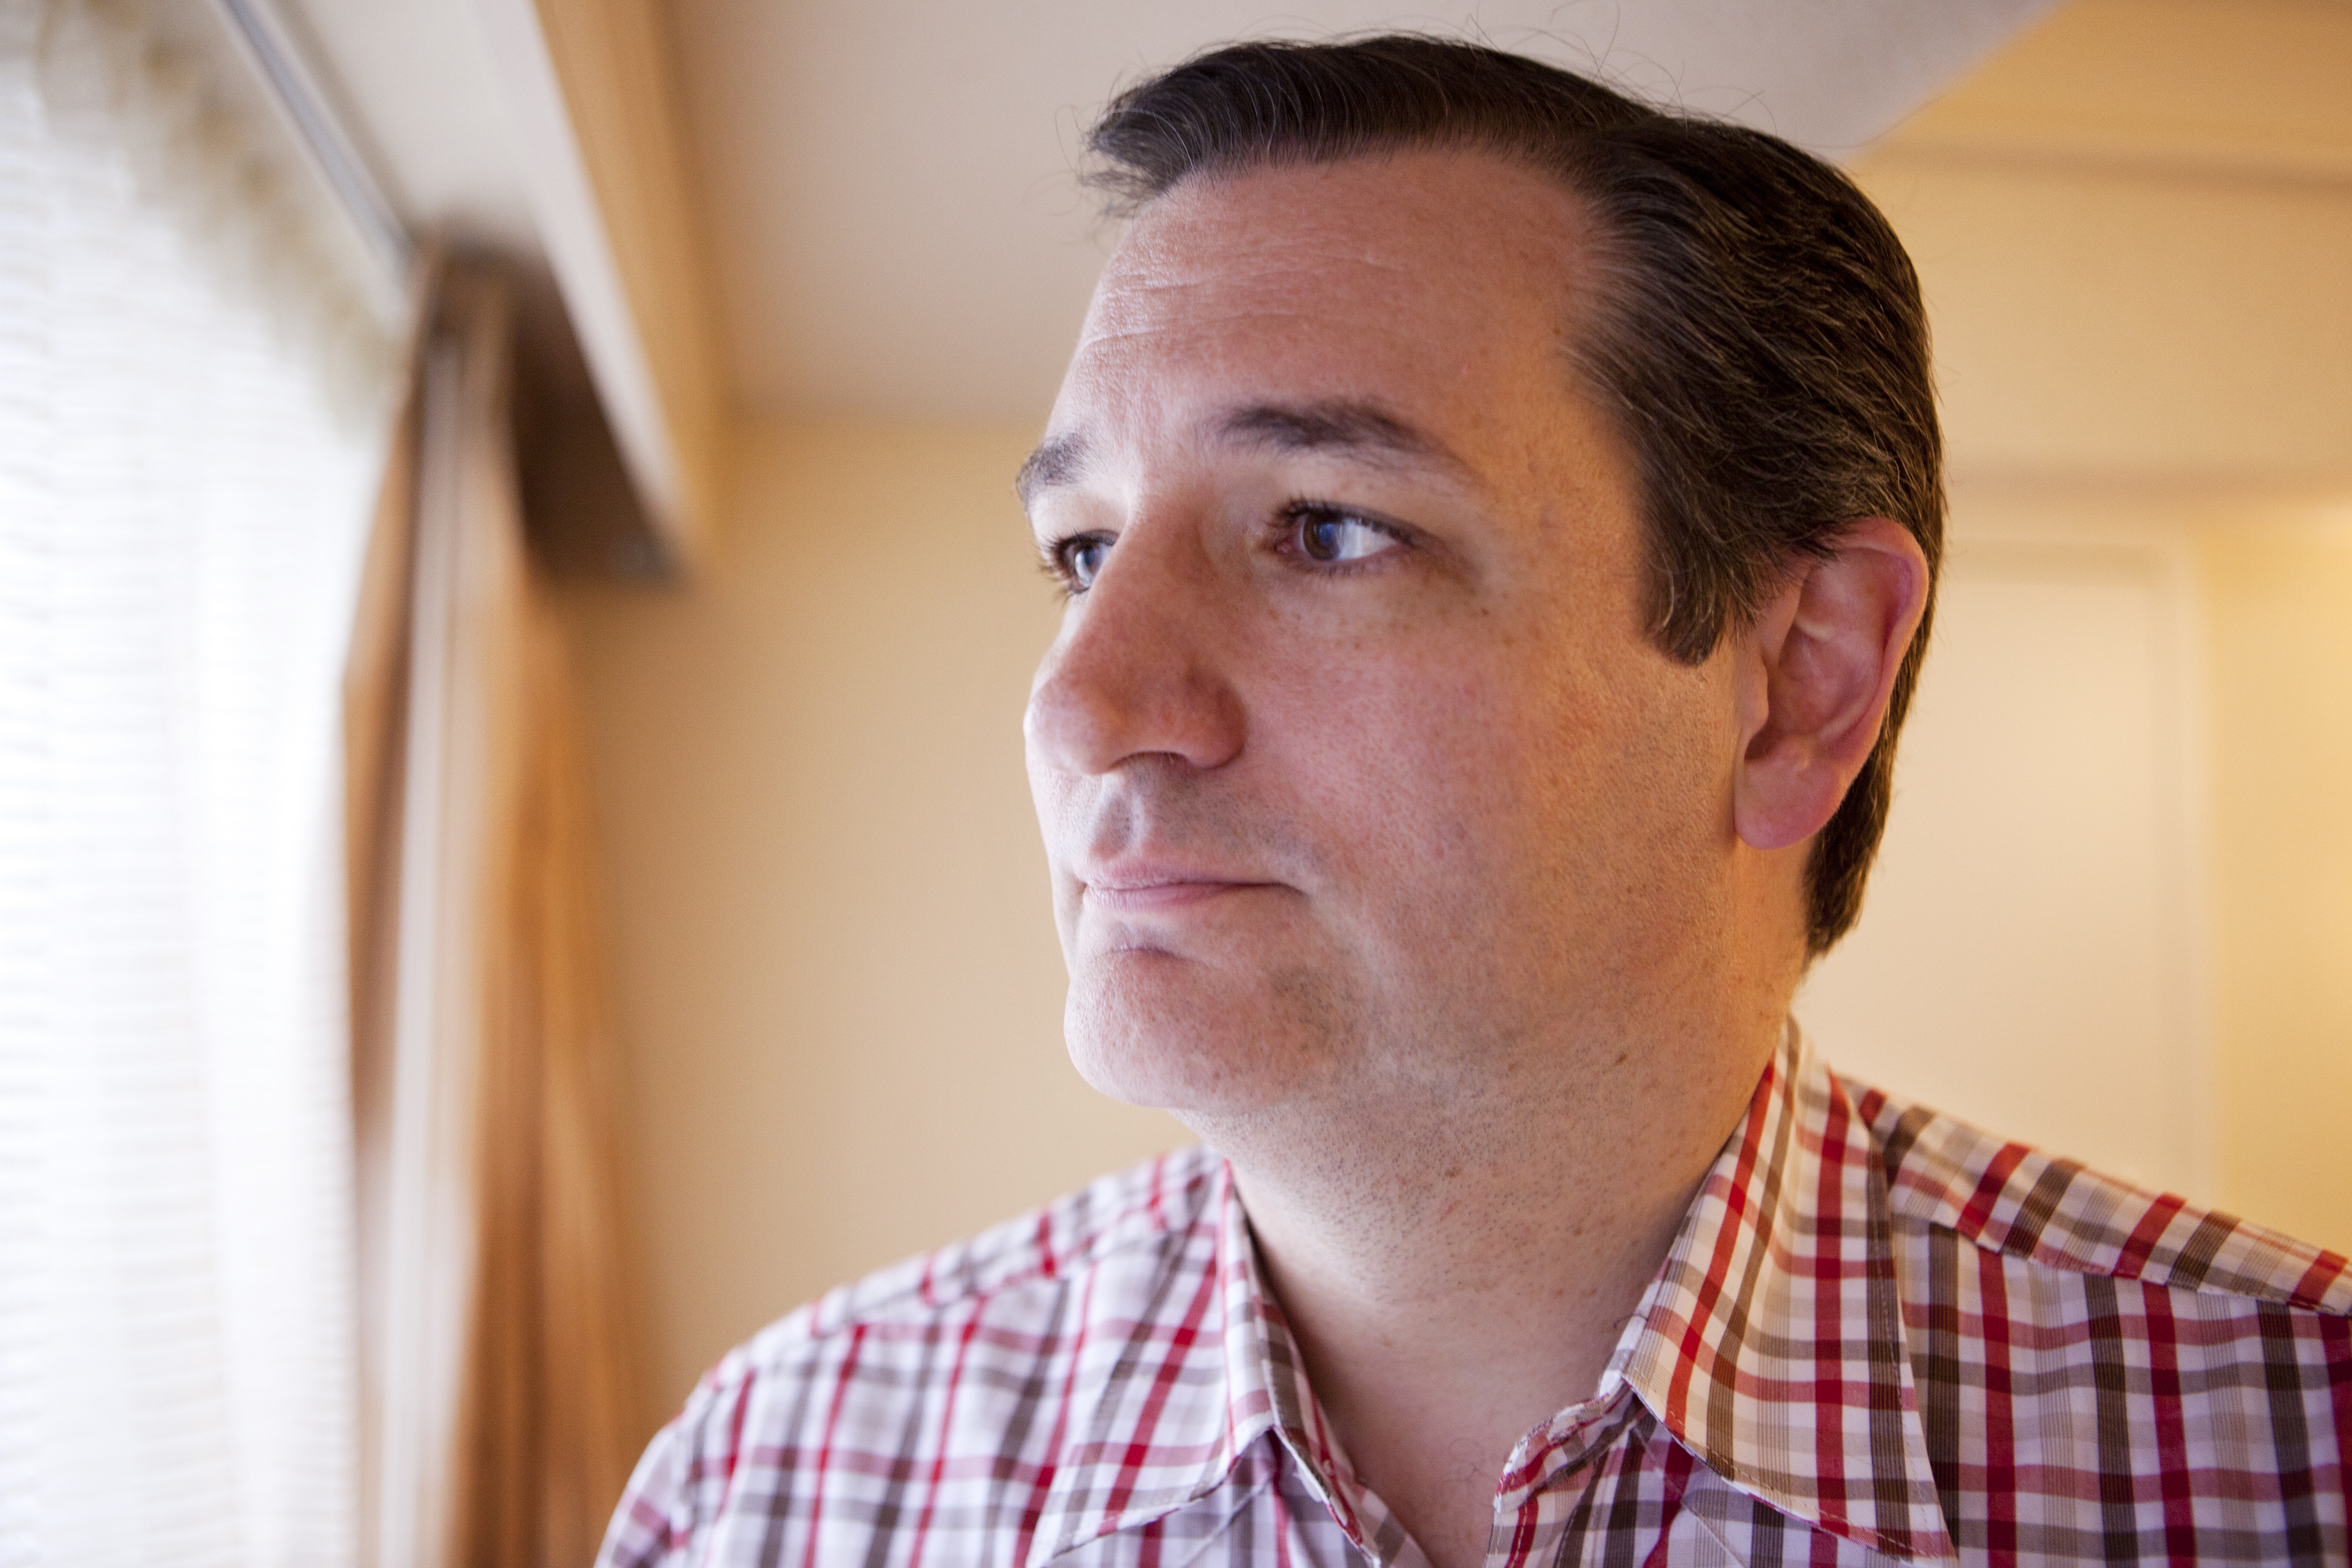 Cruz: Opposition To Same-Sex Marriage Will Be 'Front And Center' In 2016 Campaign